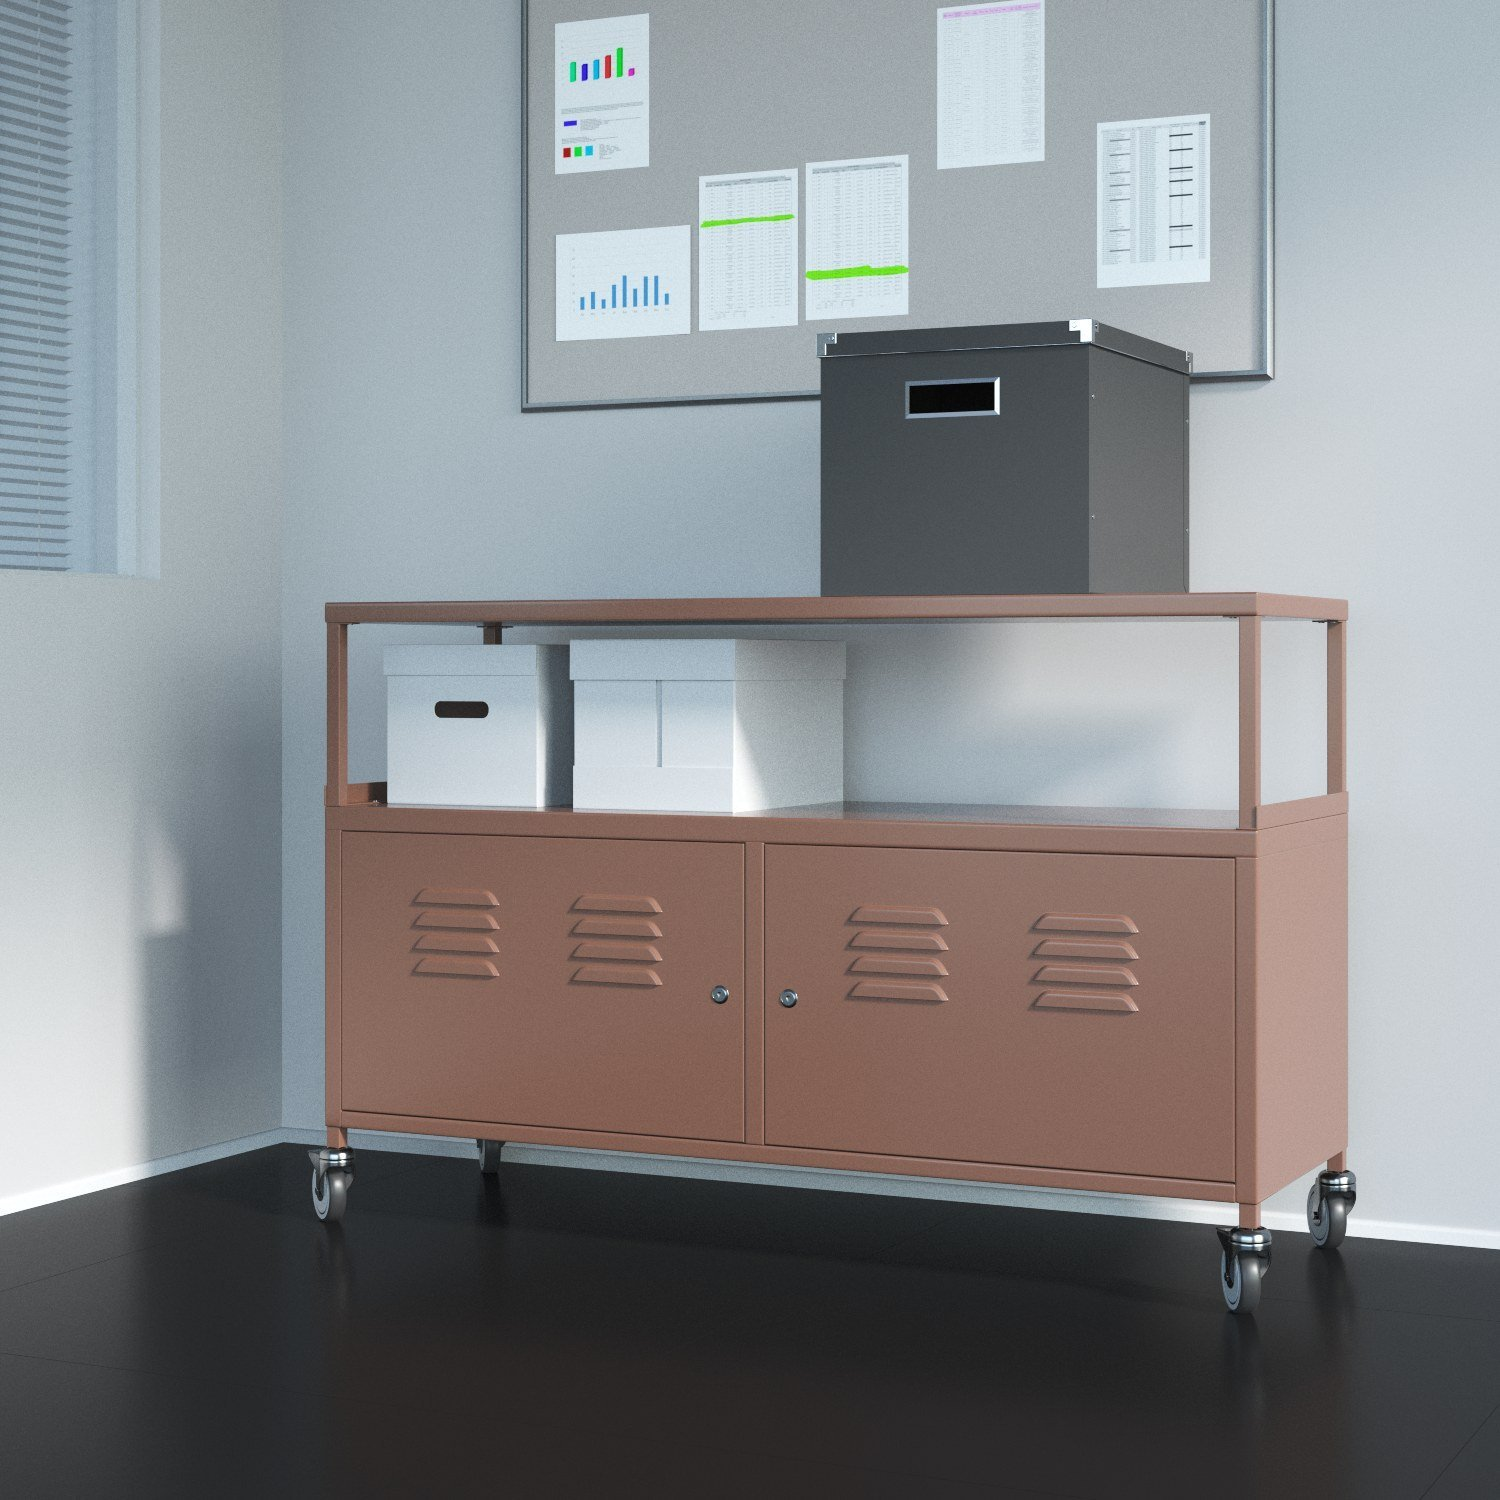 Cheap Lockable Metal Storage Cabinets, find Lockable Metal Storage ...